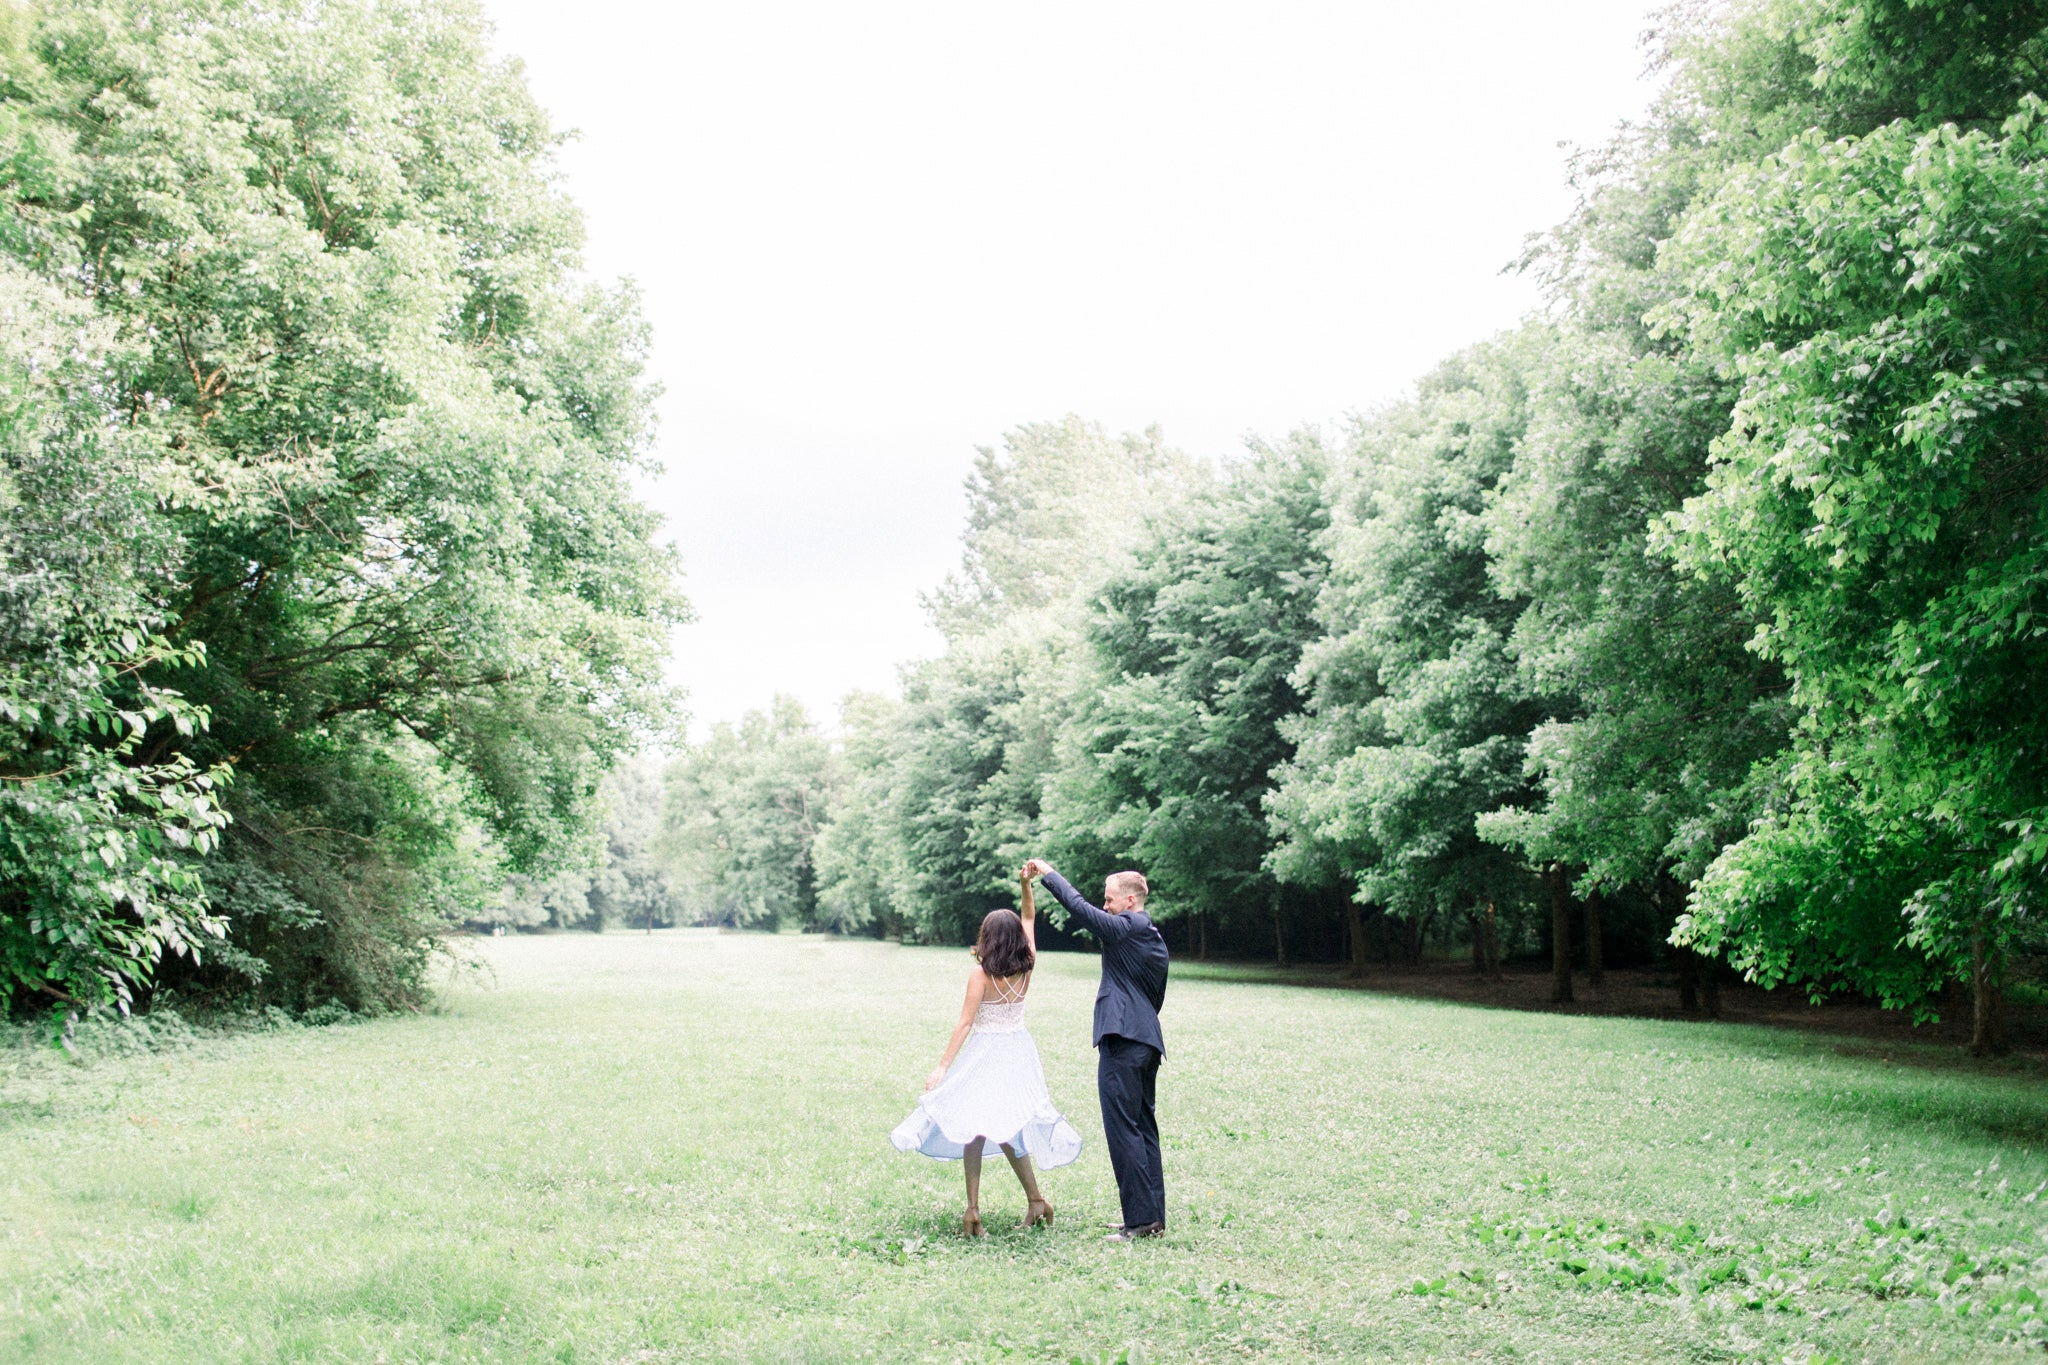 3 reasons why you should wear a lwd for engagement photos eternal ivory